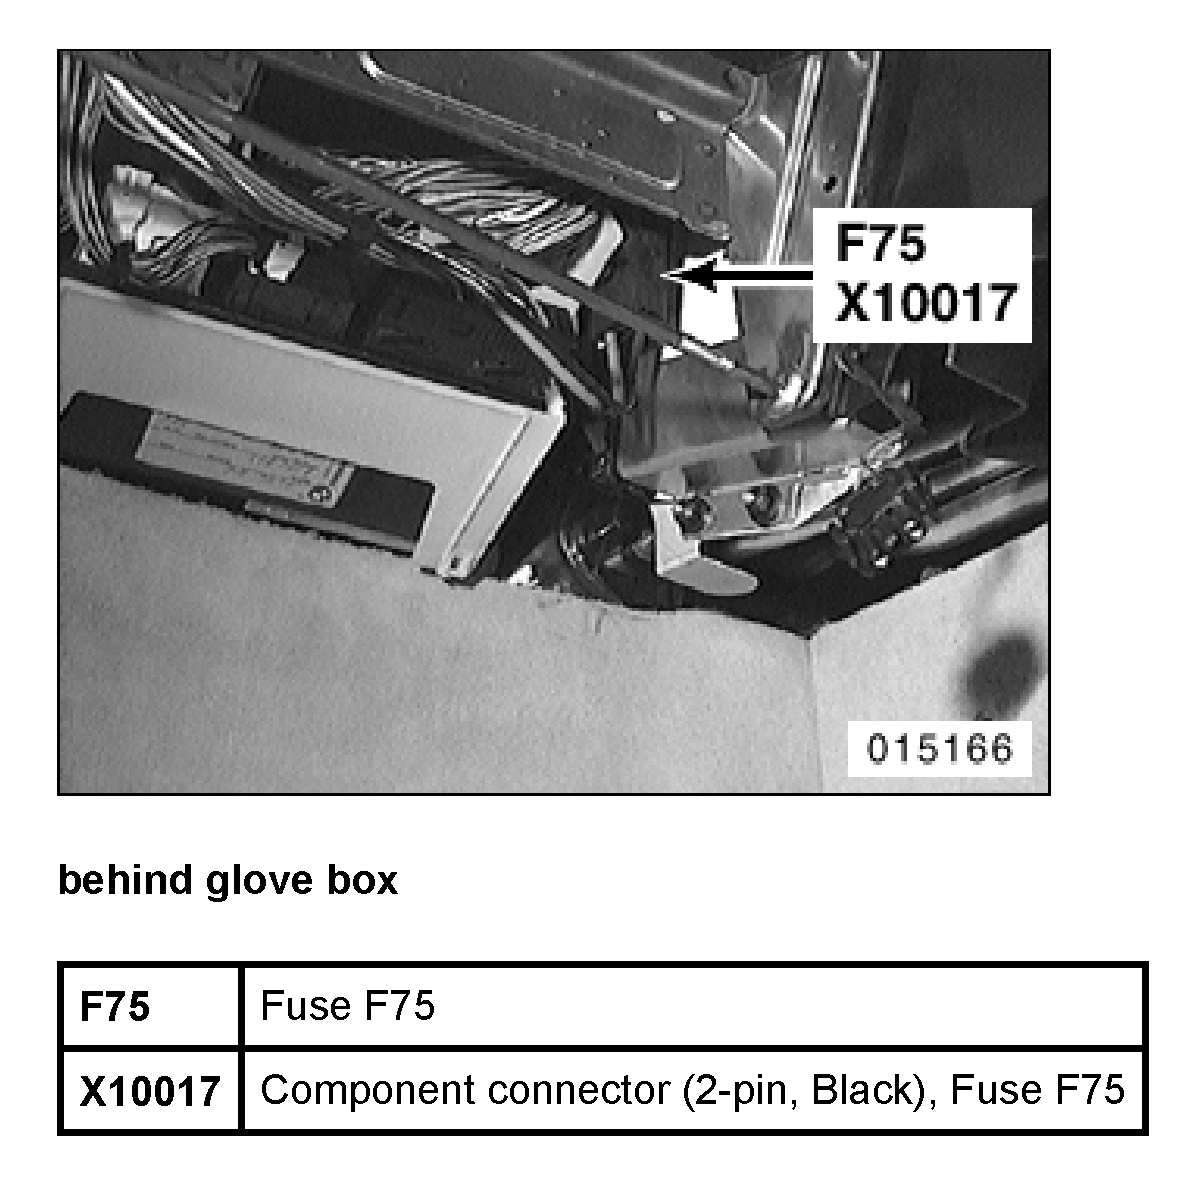 hight resolution of 06 z4 3oi fuse diagram wiring diagram detailed 06 z4 3oi fuse diagram source 2003 bmw